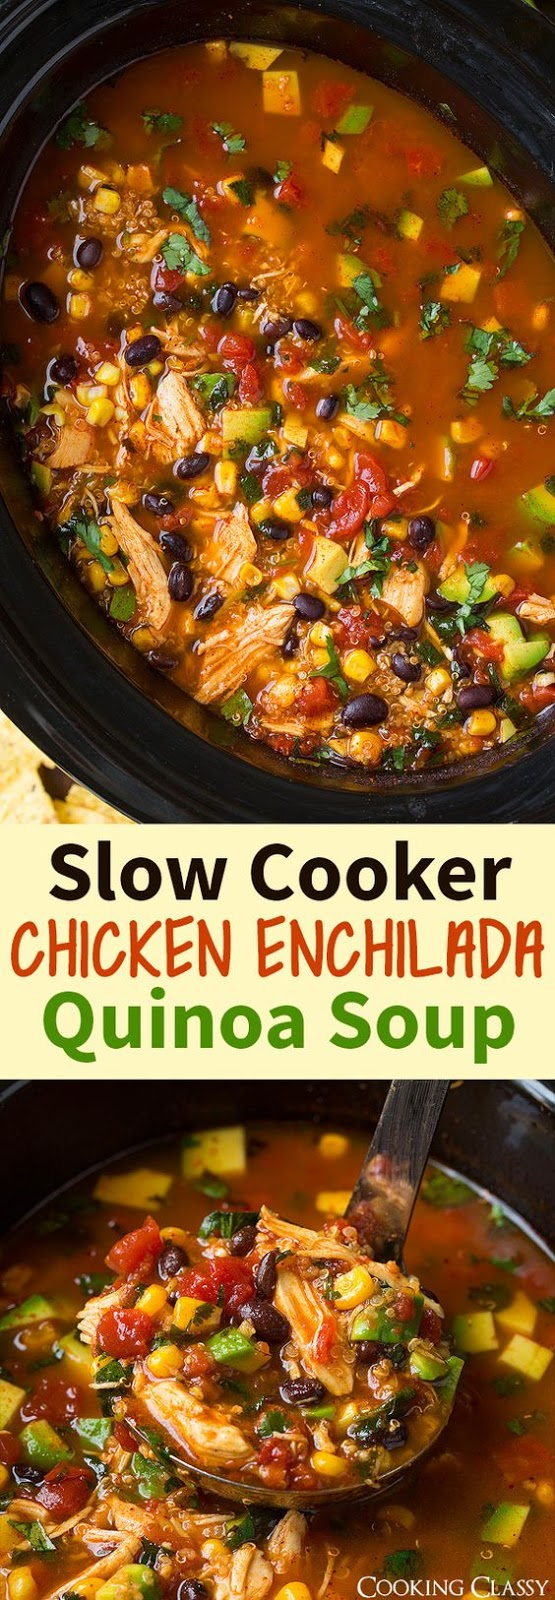 """Slow cooker chicken enchilada quinoa soup makes the perfect comforting meal to warm up with on a cold day. Full of zesty Mexican flavors and an easy """"dump and forget about it"""" kind of meal."""